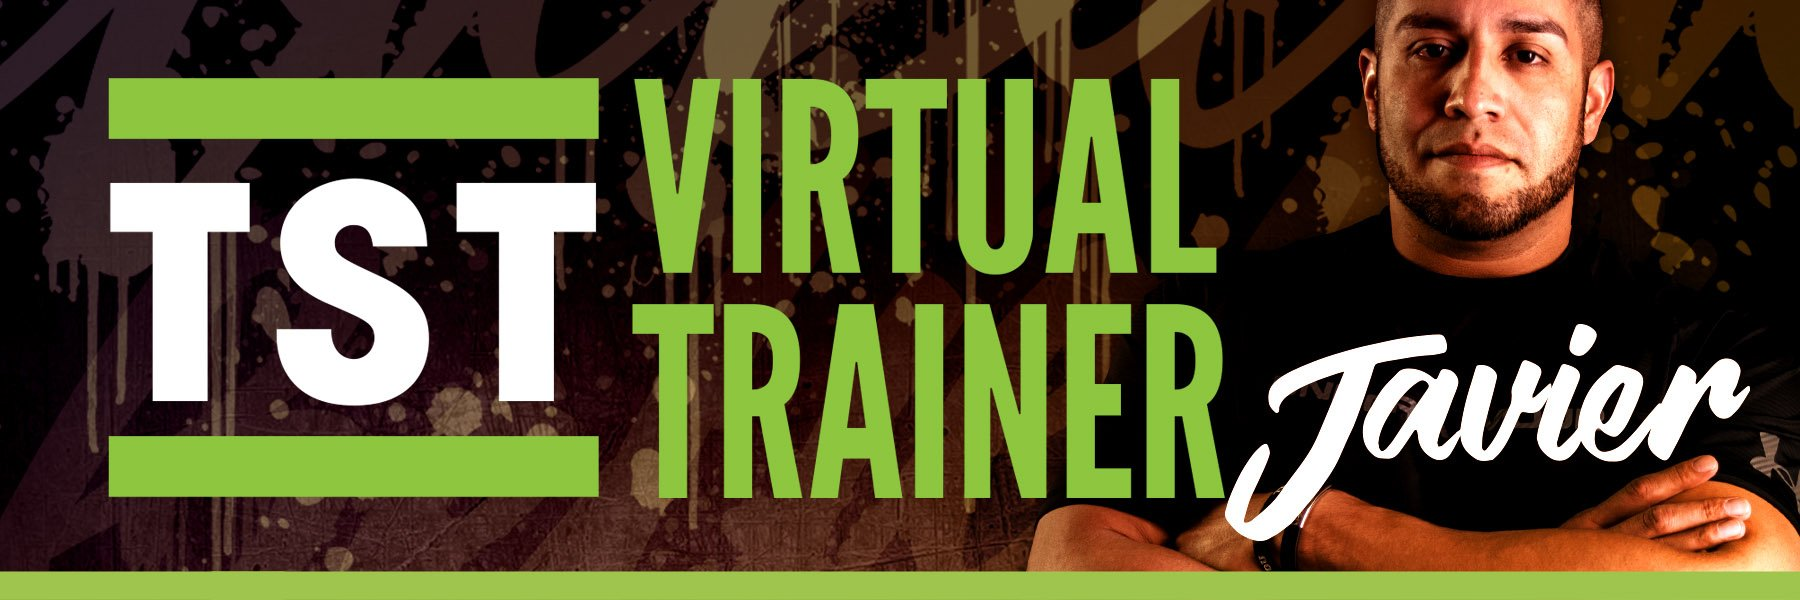 TST Virtual Trainer with Javier